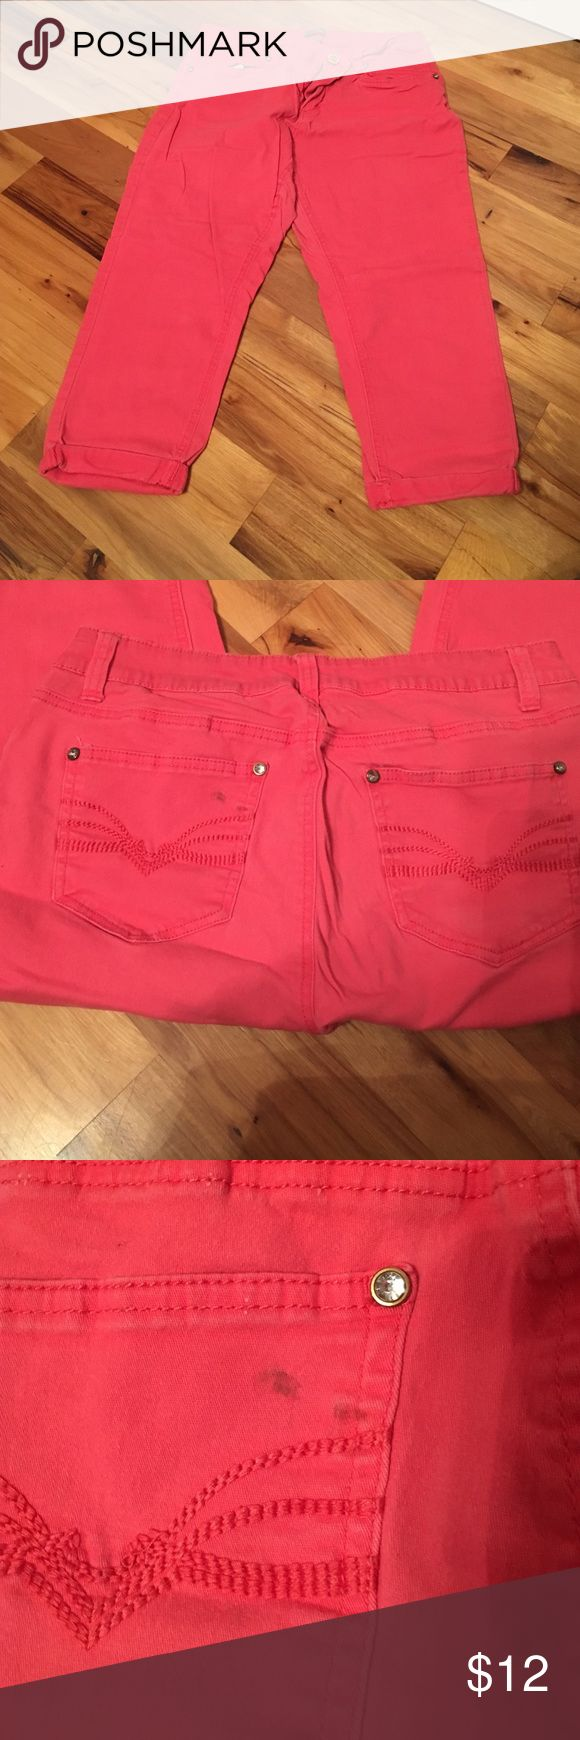 New directions coral capris Size 12 new directions coral capris. Small mark on back pocket. Very comfortable. new directions Pants Capris